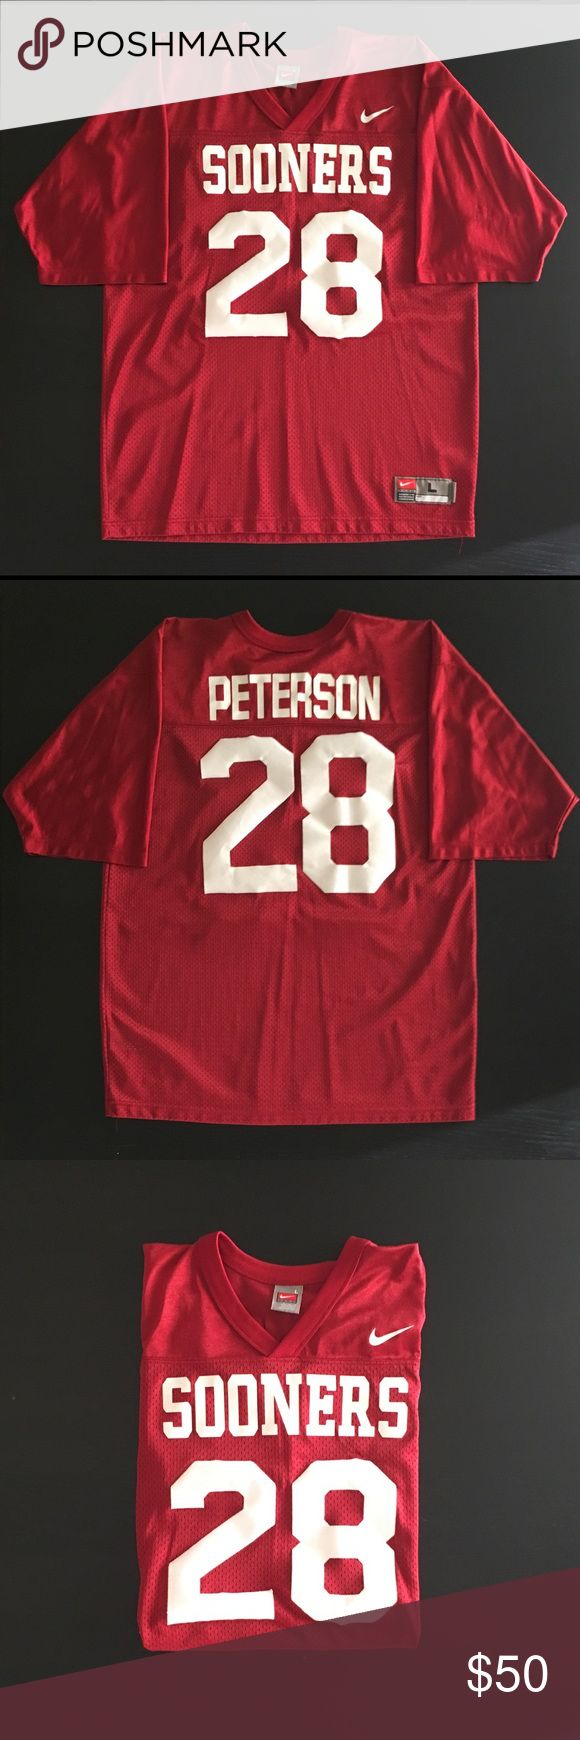 Vintage Adrian Peterson Sooners Fan Jersey. Sz Lrg Vintage, Adrian Peterson Sooners Fan Jersey by Nike in a Men's Large.  Rare gem!  Body: 100% Nylon.  Trim: 100% Polyester Exclusive of Decoration.  Both the team name and Adrian's last name on back are screen printed.  The numbers on front and back are adhesives and not actually stitched on... due to natural aging the numbers have lost some of their adhesiveness, but nothing major.  Zero stains on this jersey and fits great! Nike Shirts Tees…